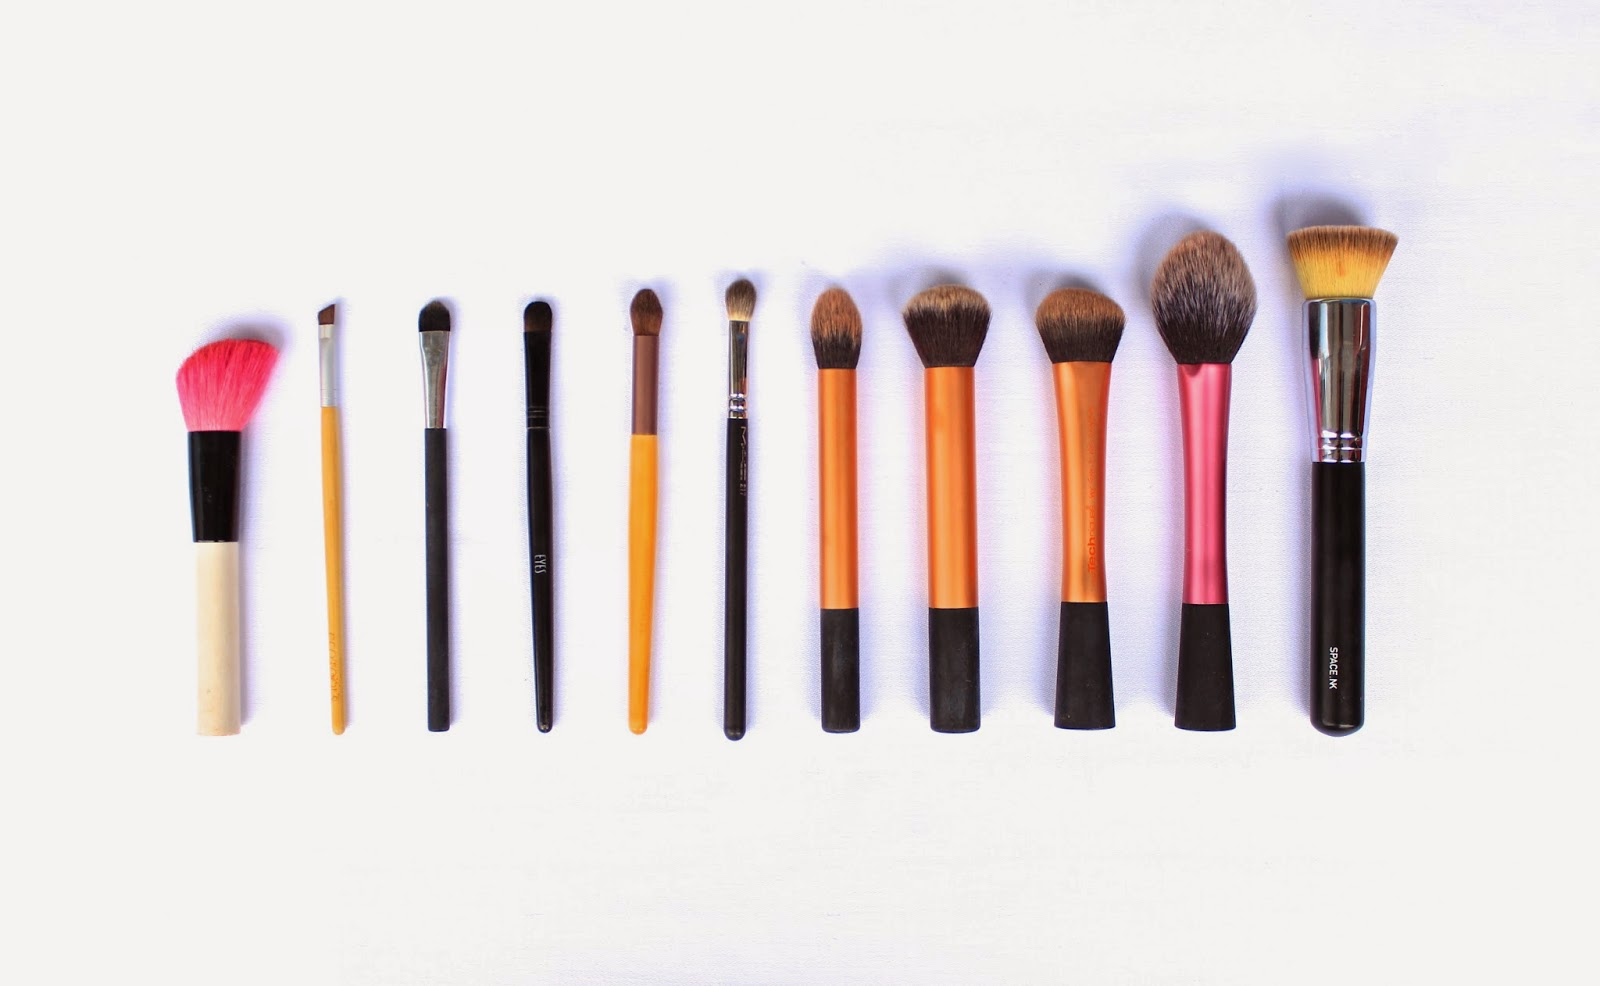 Washing your makeup brushes